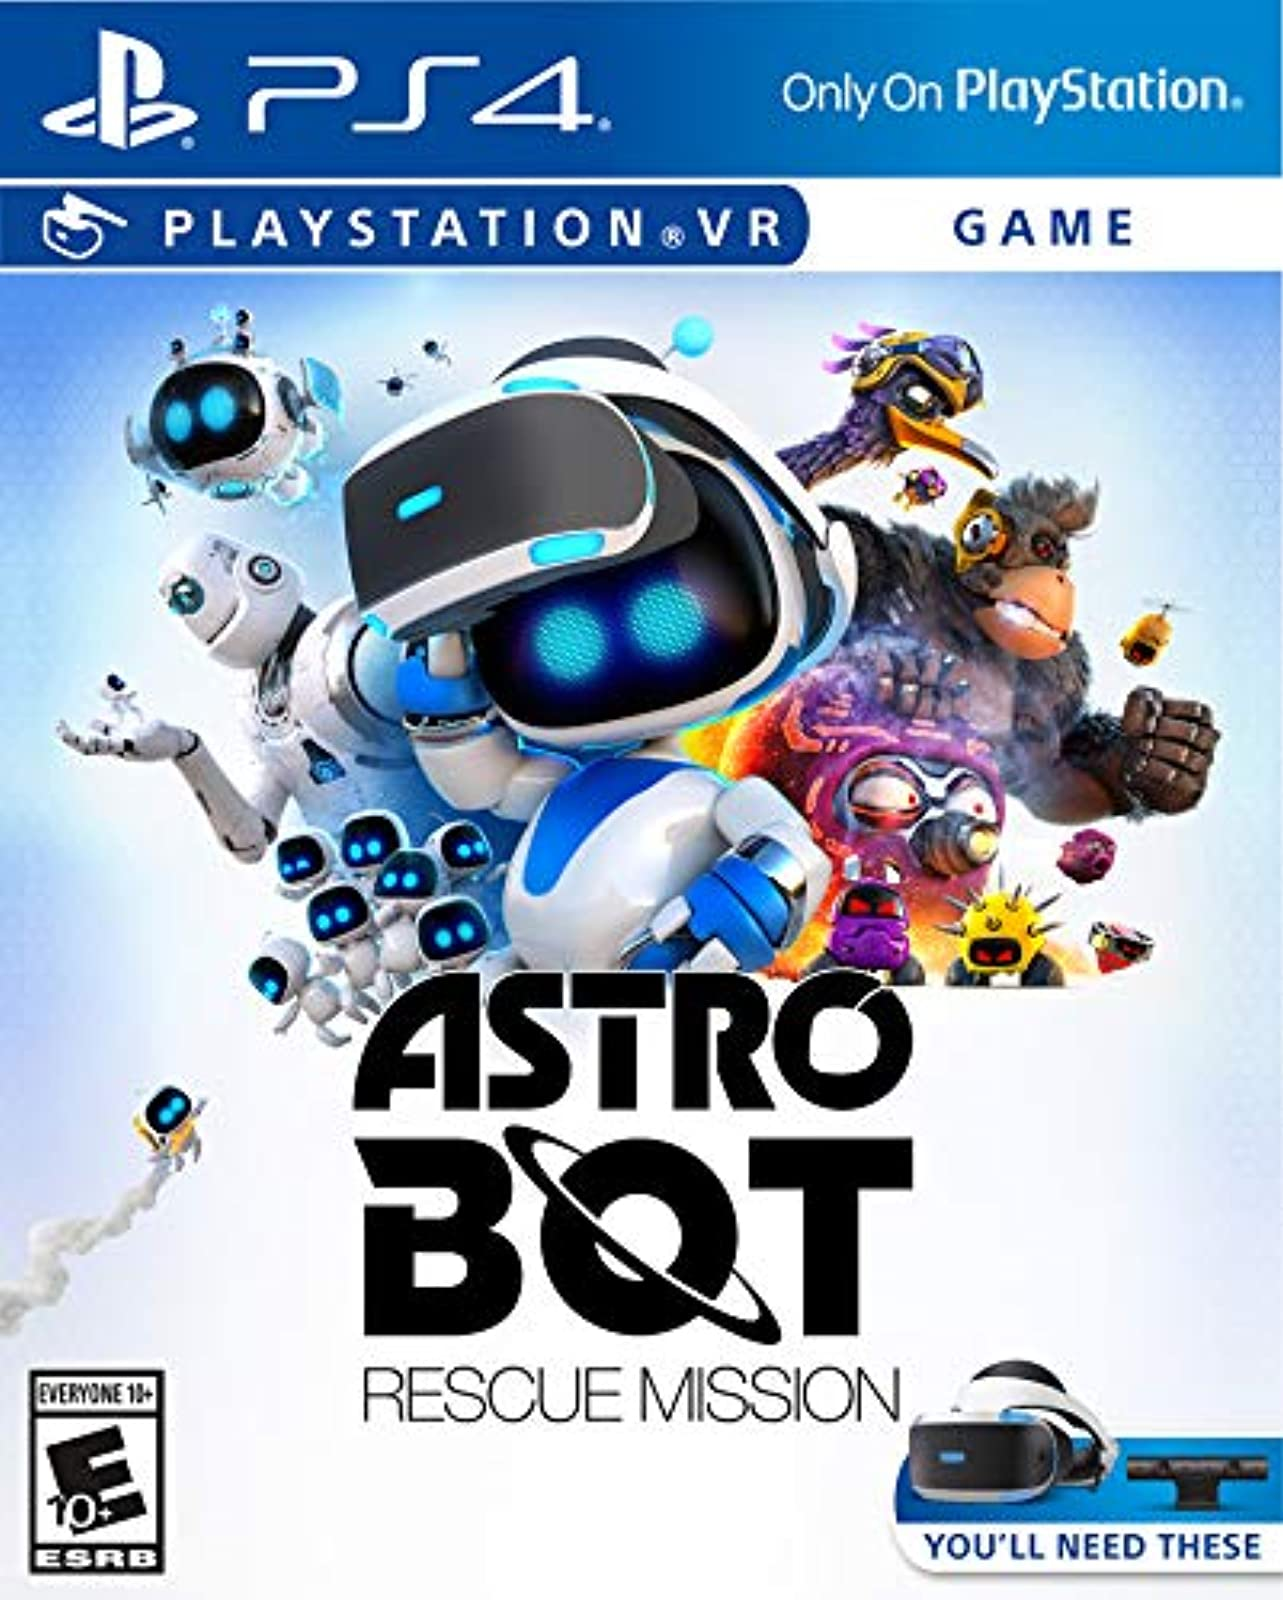 Astro Bot Rescue Mission PlayStation VR For PlayStation 4 PS4 PS5